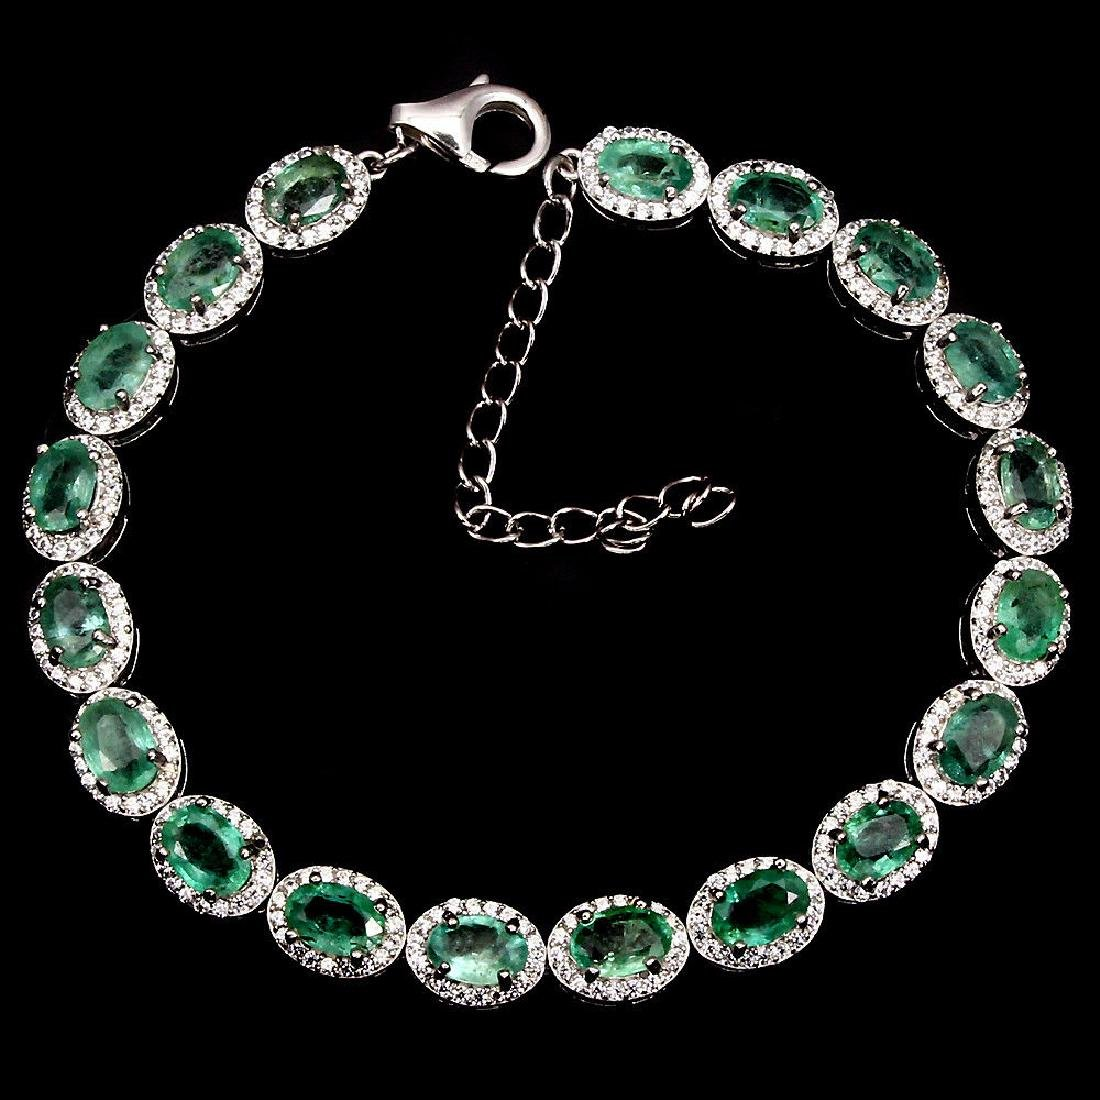 Natural  Green Emerald 56.43 Cts Bracelet - 2